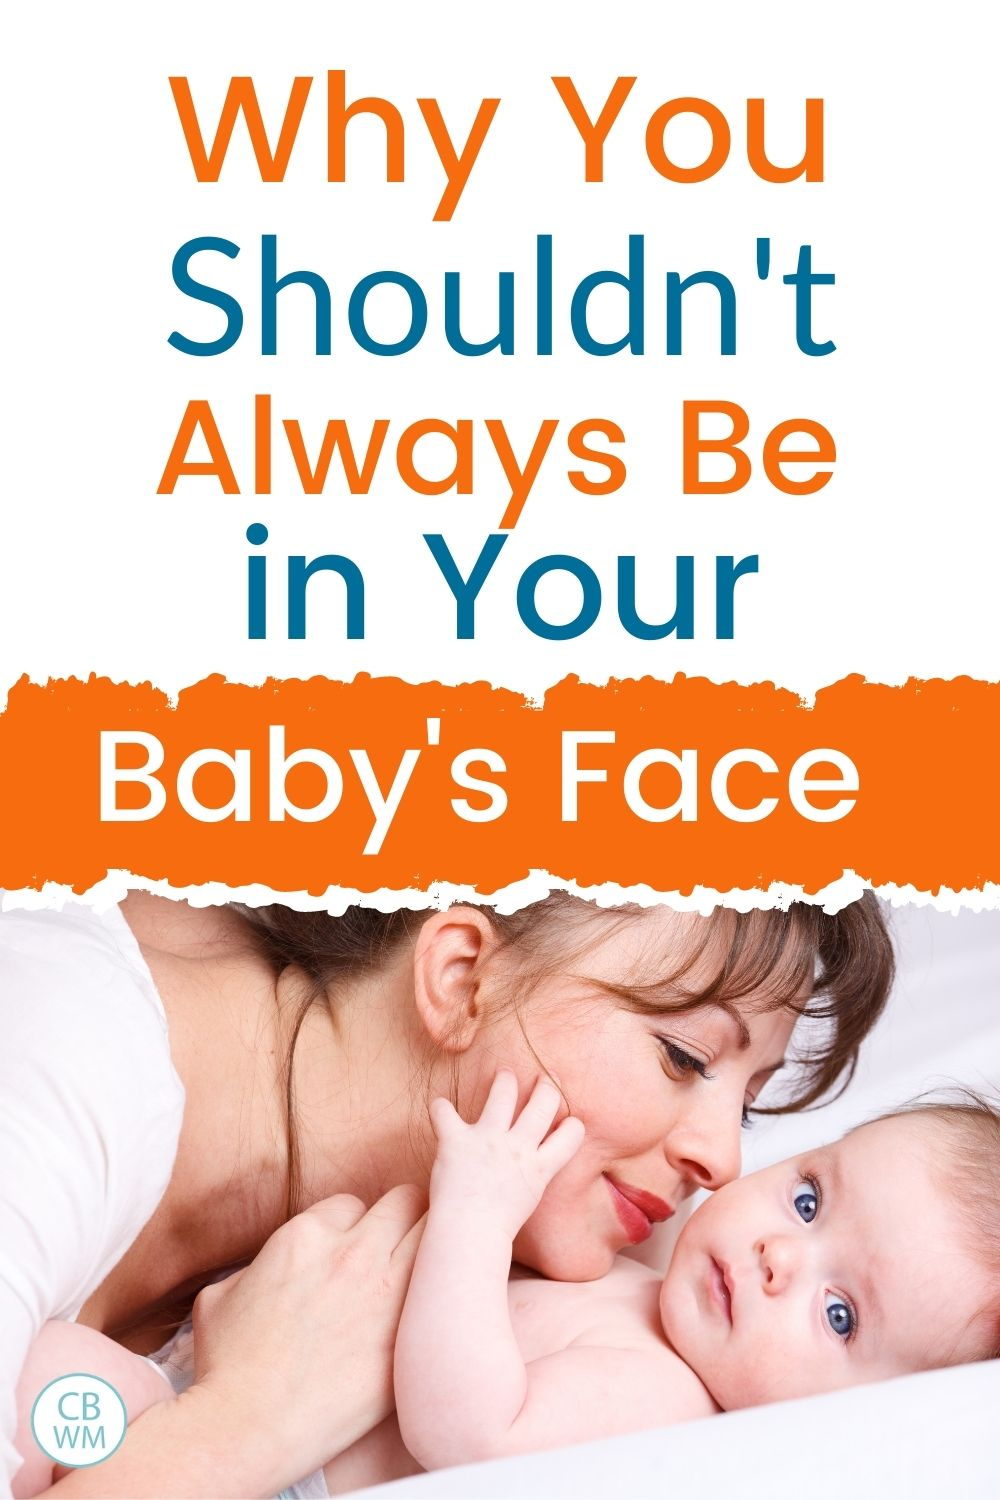 Why you shouldn't be in your baby's face